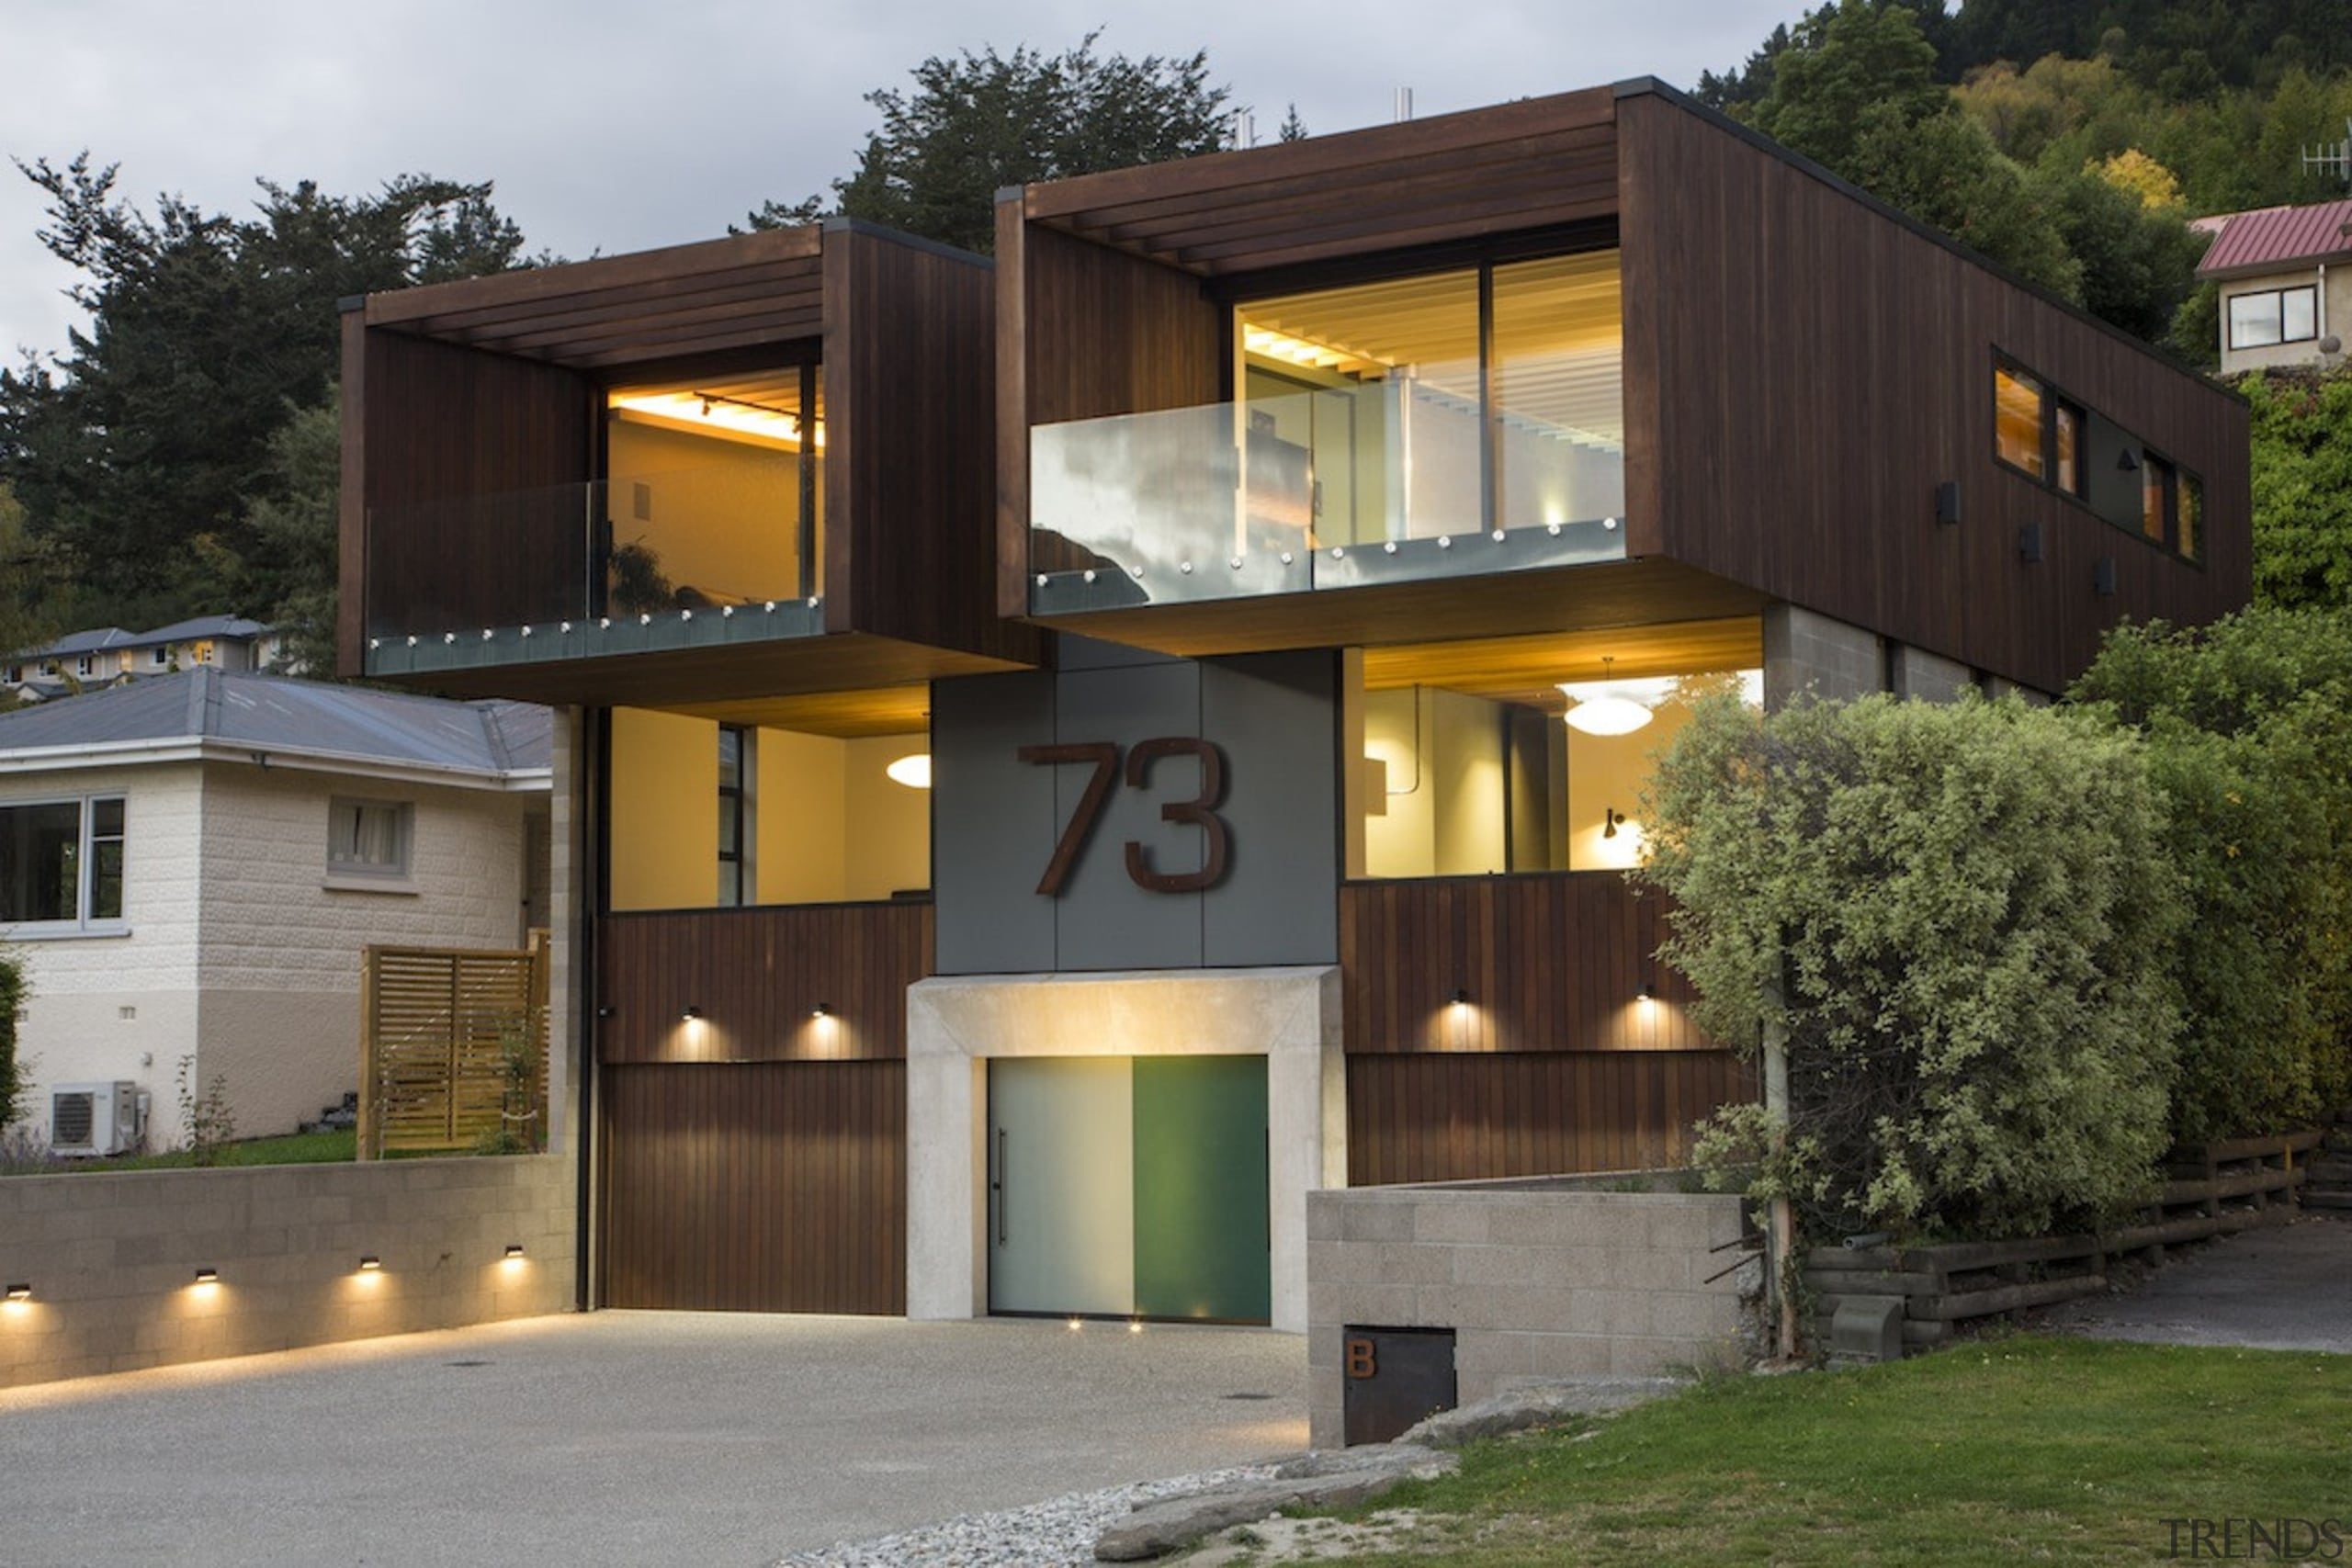 Arrowtown-based Bennie Builders was the only Southern Lakes architecture, building, elevation, facade, home, house, real estate, residential area, black, brown